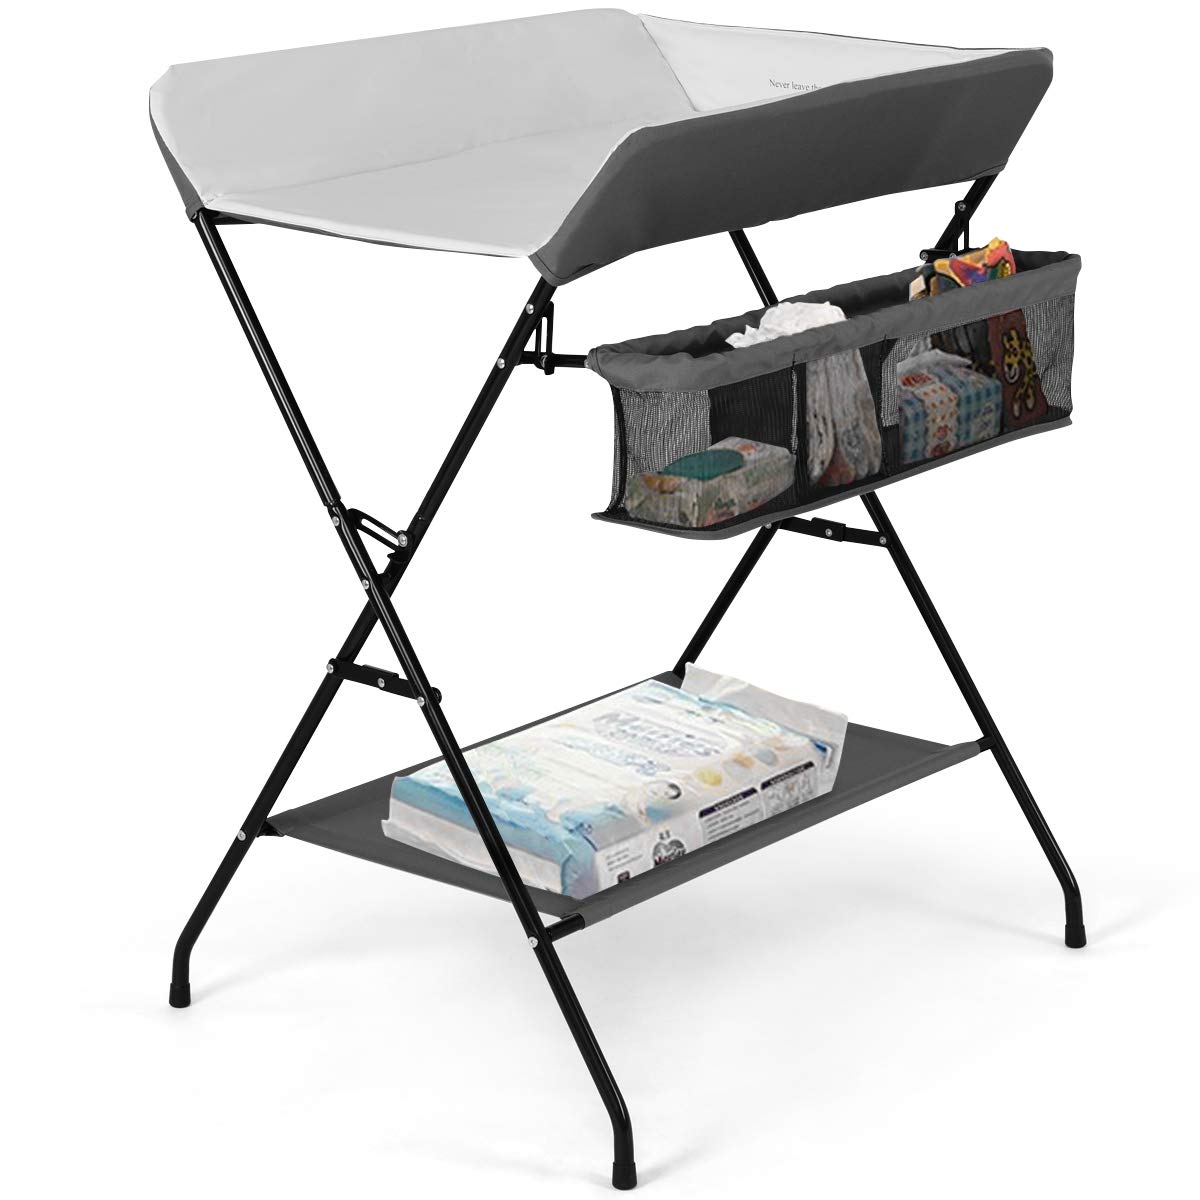 Costzon Baby Changing Table, Folding Diaper Station Nursery Organizer for Infant (Gray) by Costzon